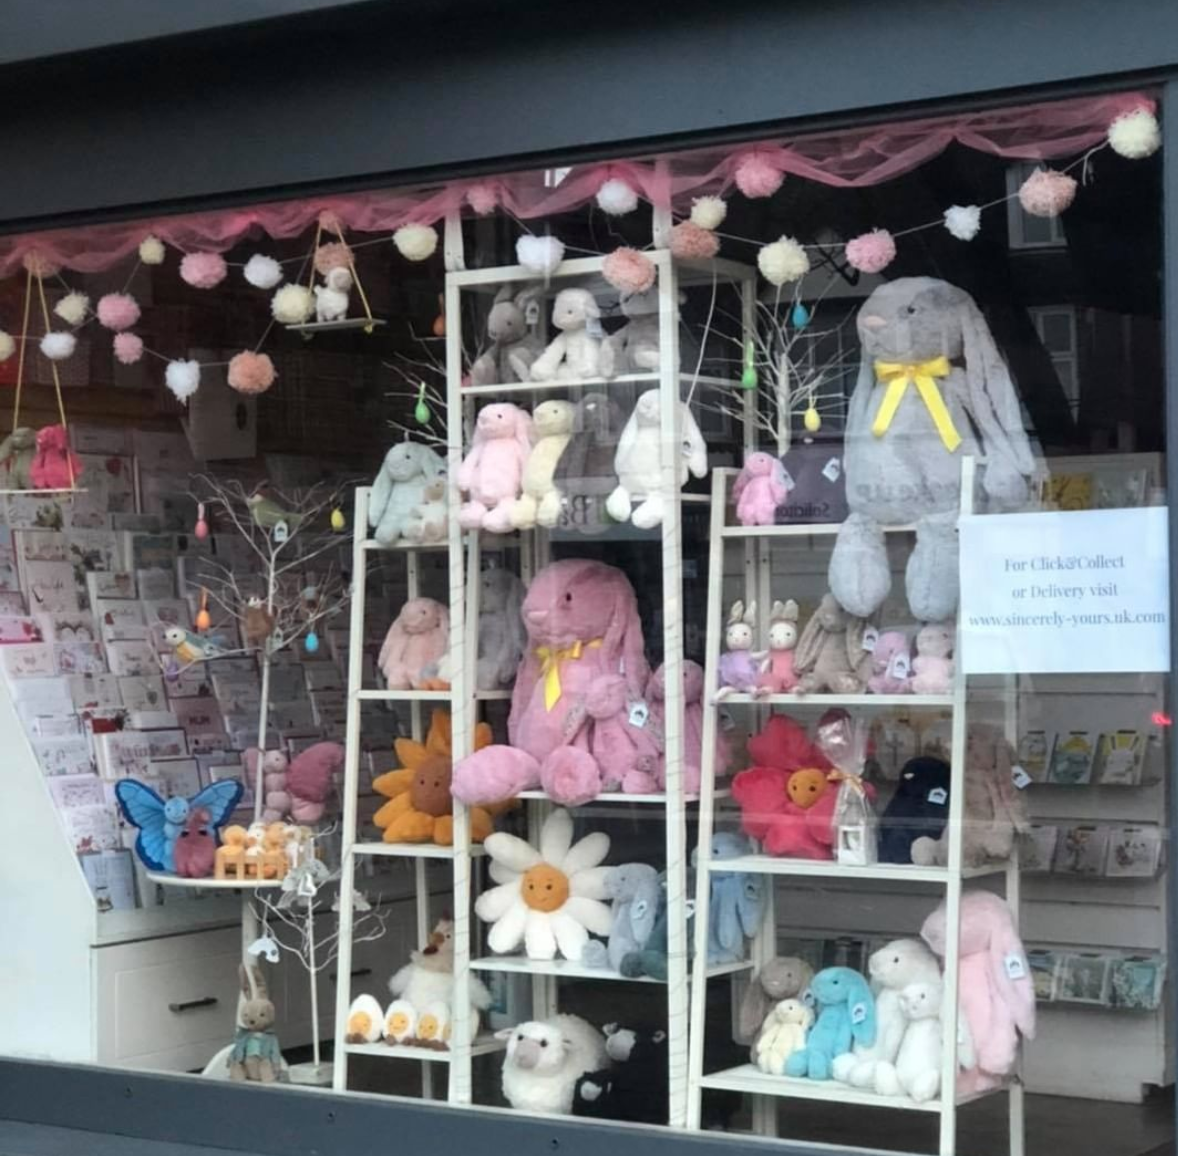 Above: The Easter window display of Sincerely Yours.